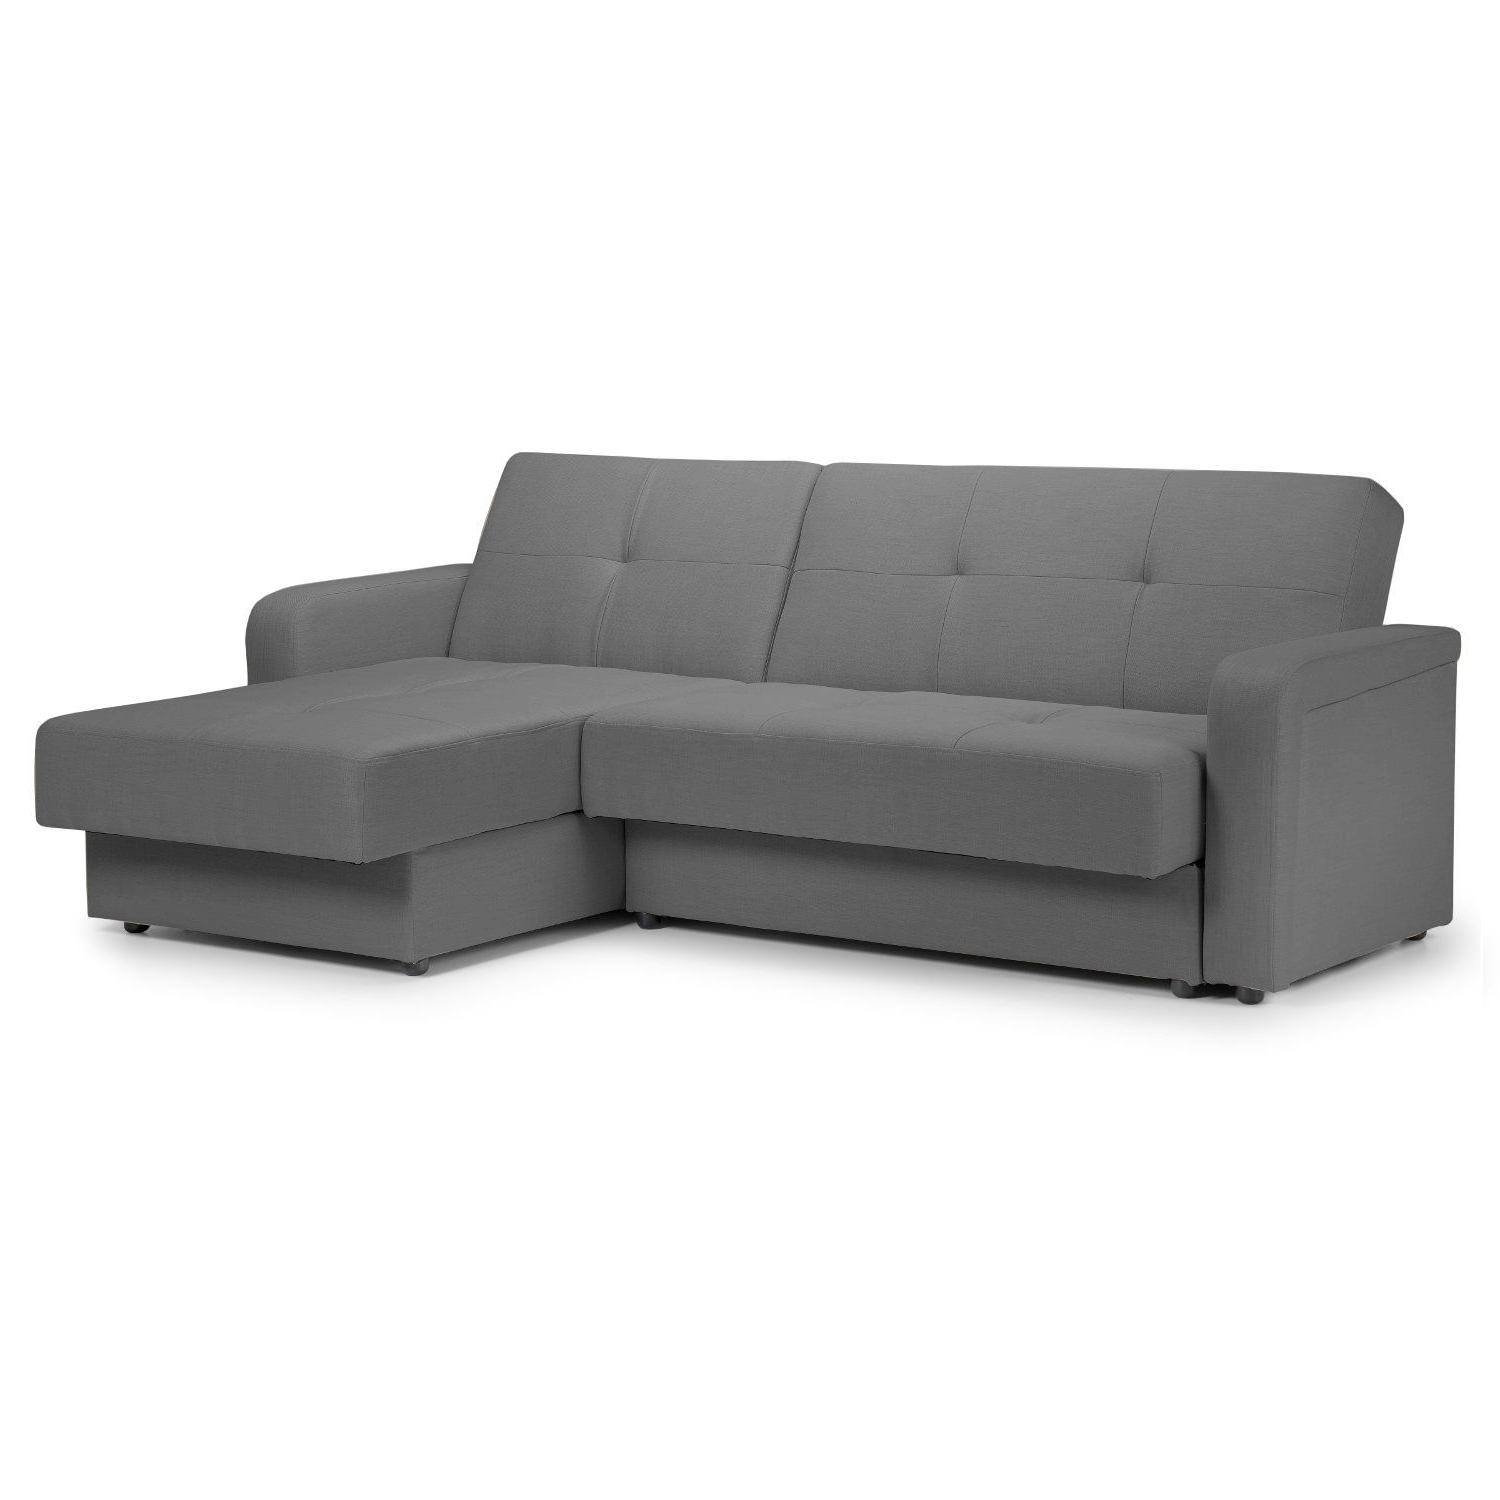 Popular Corner Sofa Beds With Chaise With Florida Fabric Corner Chaise Sofa Bed – Next Day Delivery Florida (View 14 of 15)